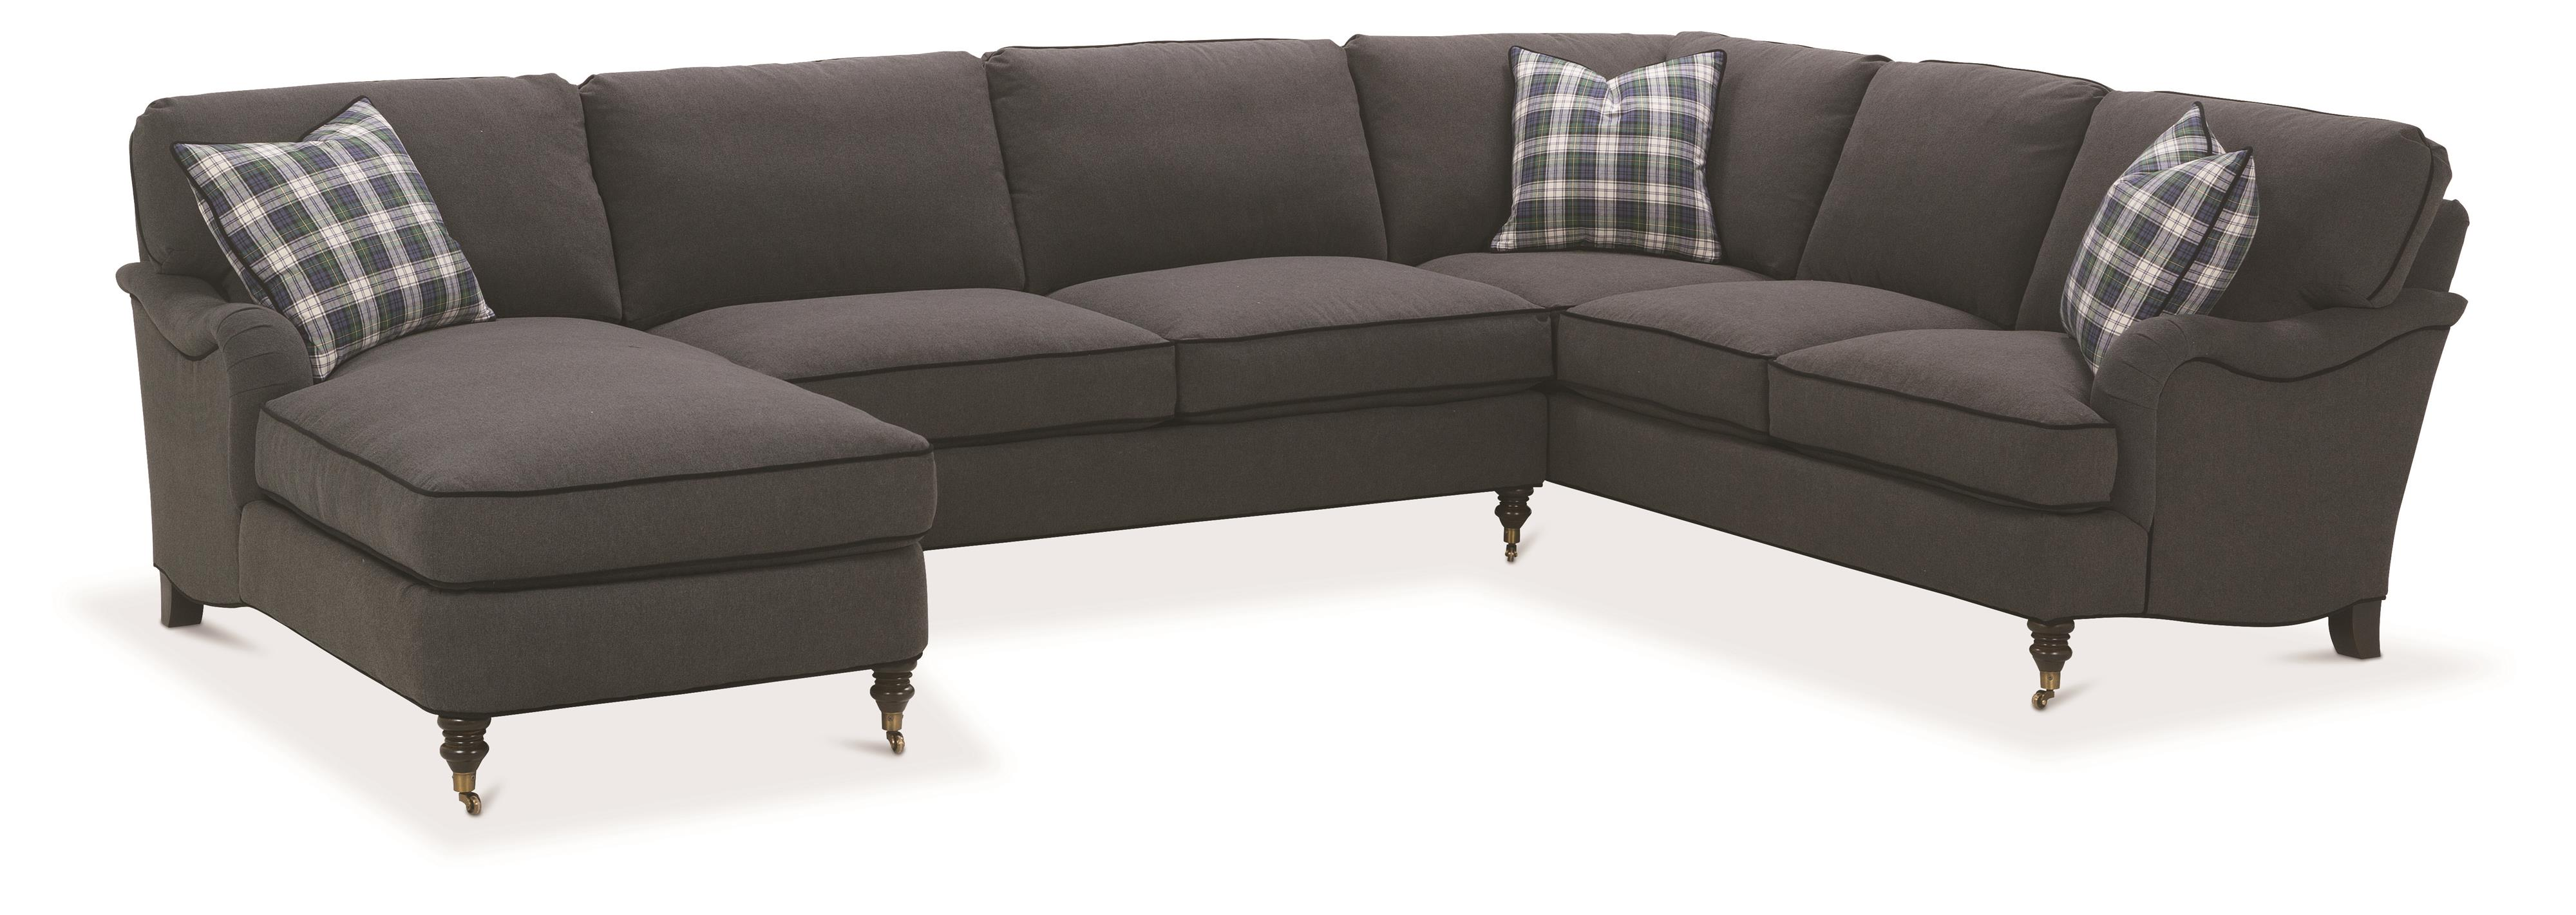 Brooke Sectional Sofa with Castered Turned by Robin Bruce at Saugerties Furniture Mart